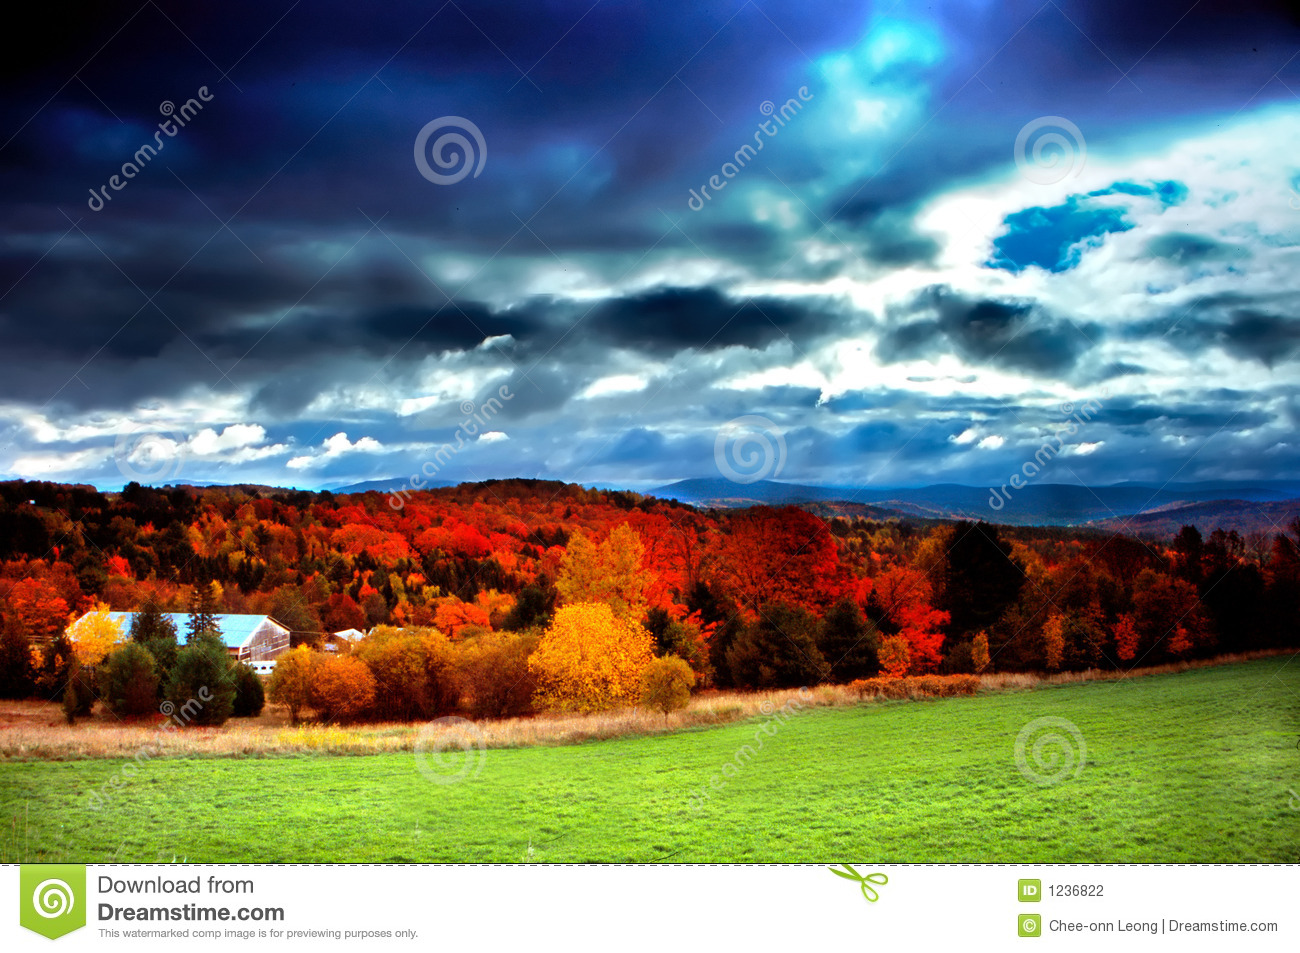 Wallpaper Fall Farmhouse Vermont Usa Stock Photo Image Of Autumn Countryside